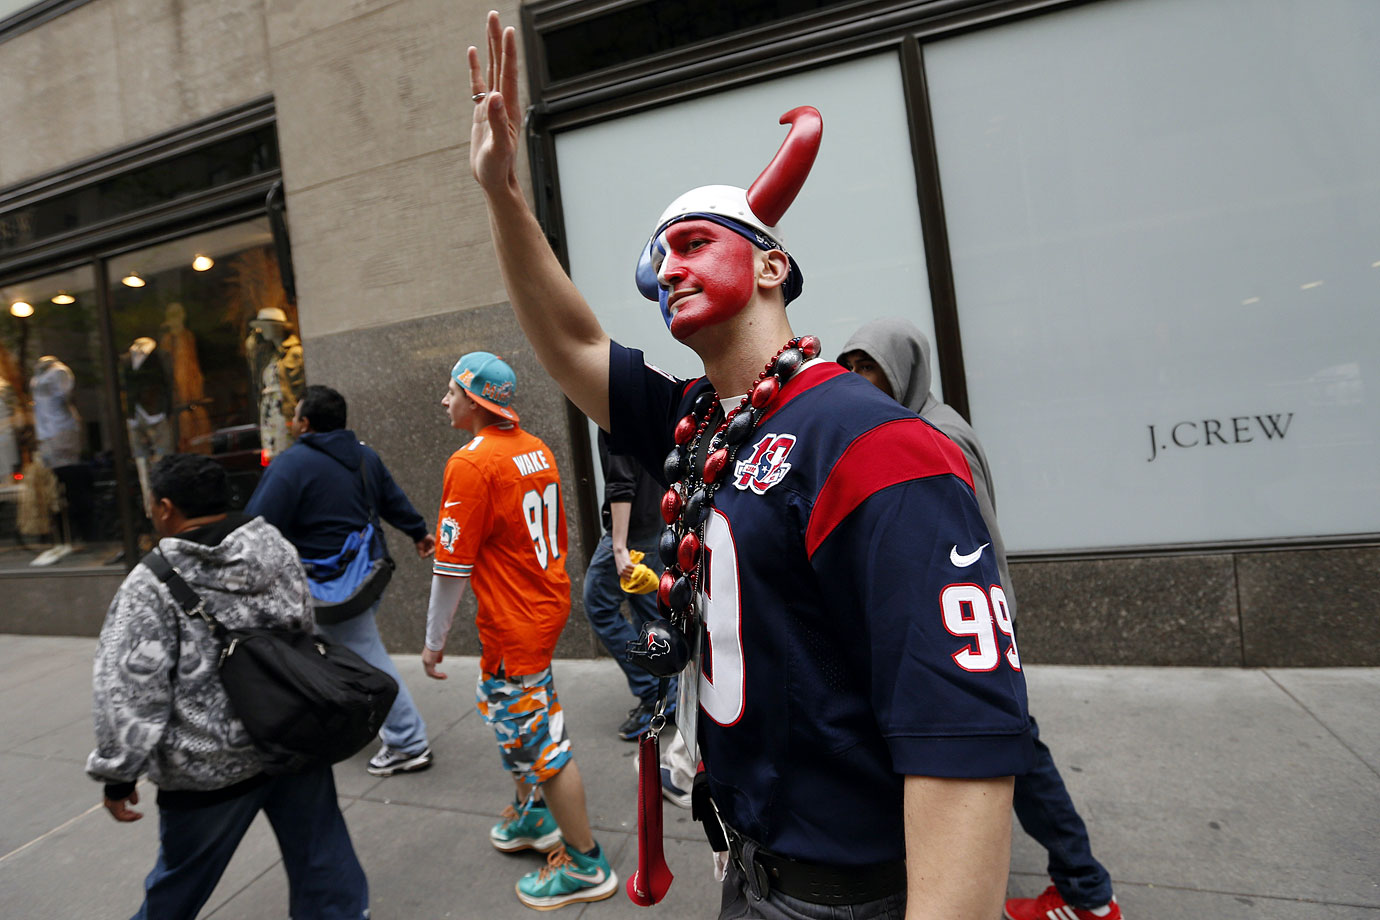 Houston Texans fans in 2014.